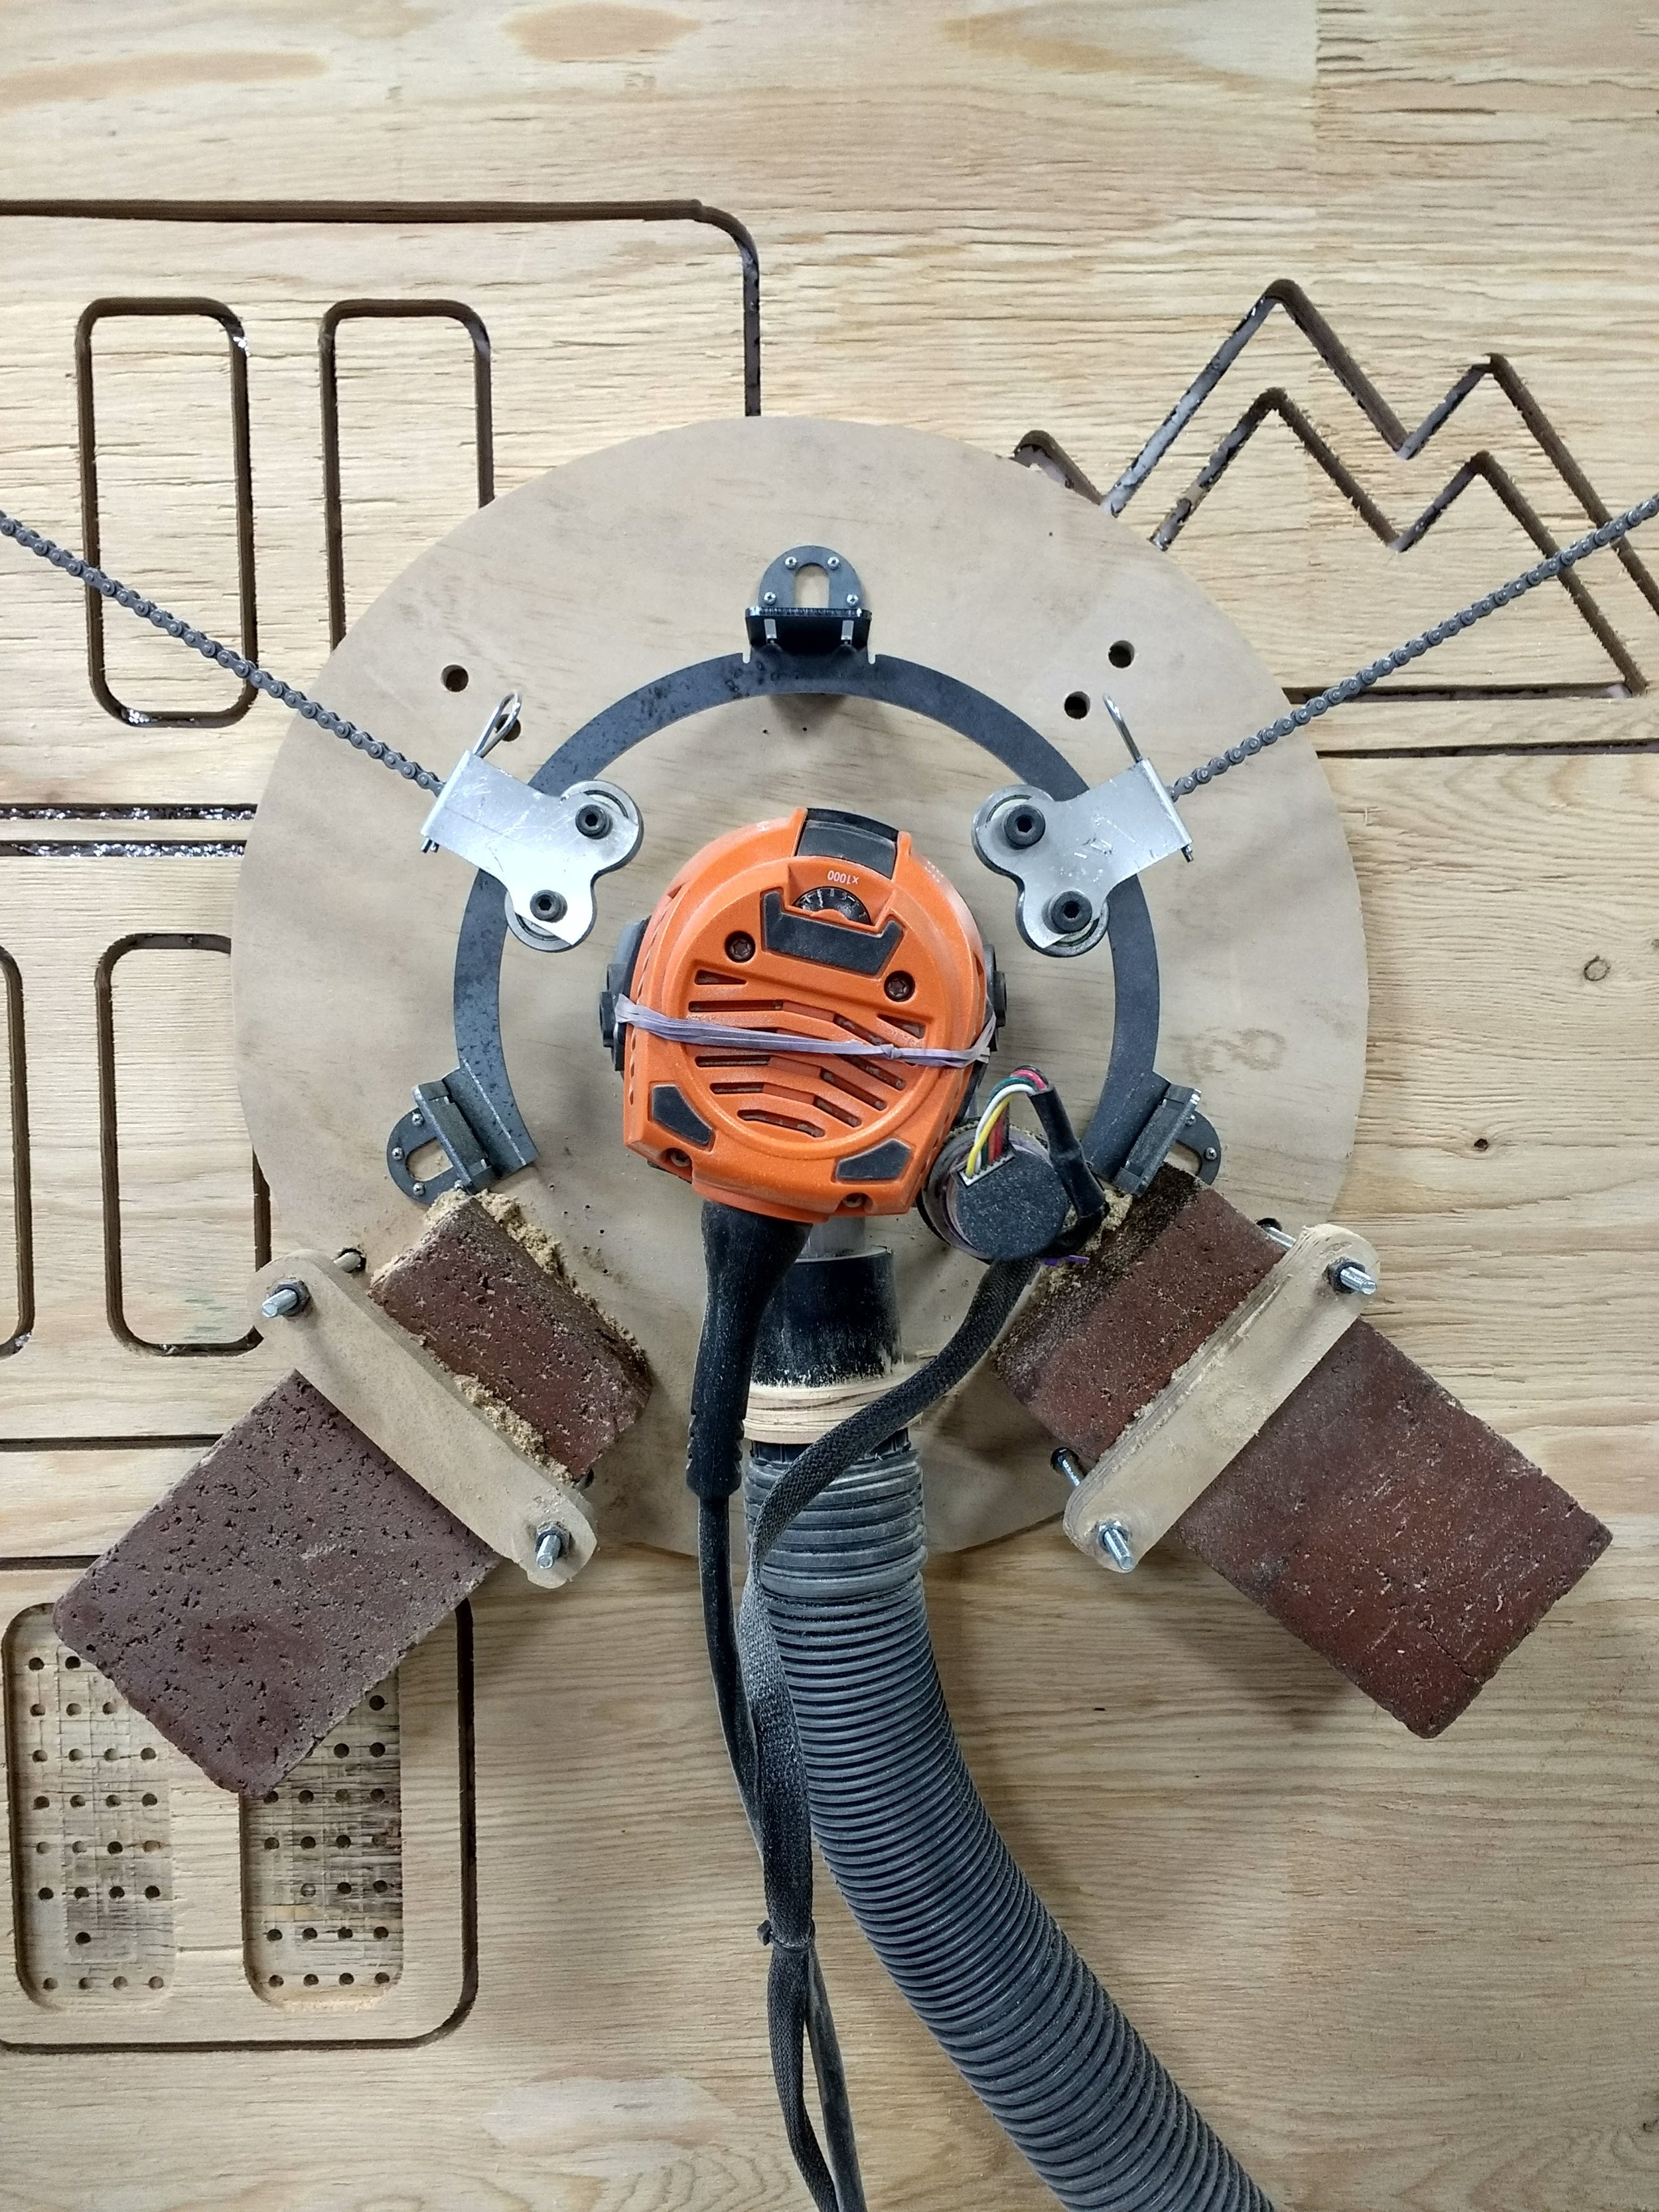 Our new ring system, where chains point to a single spot - the router bit.